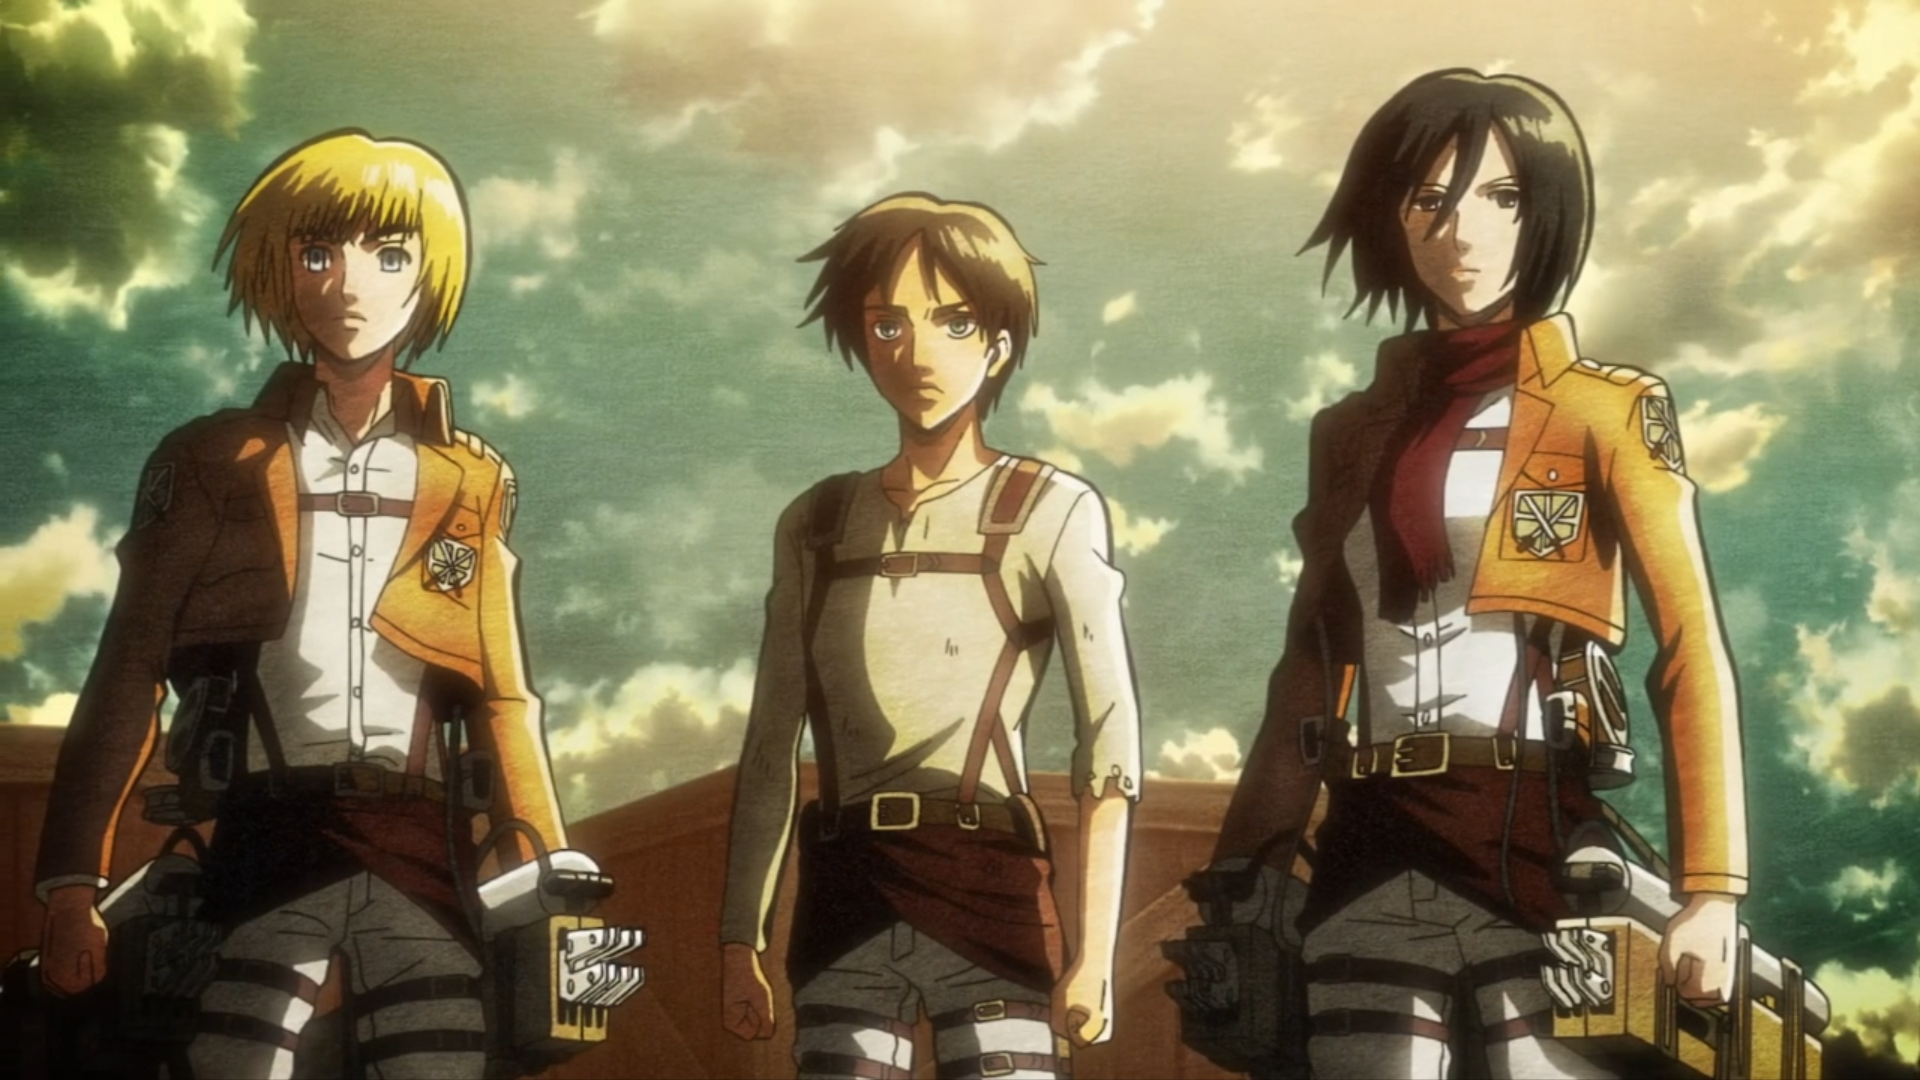 Eren Jaeger Mikasa Ackerman Armin Arlert Hd Wallpaper Background Image 1920x1080 Id 919228 Wallpaper Abyss